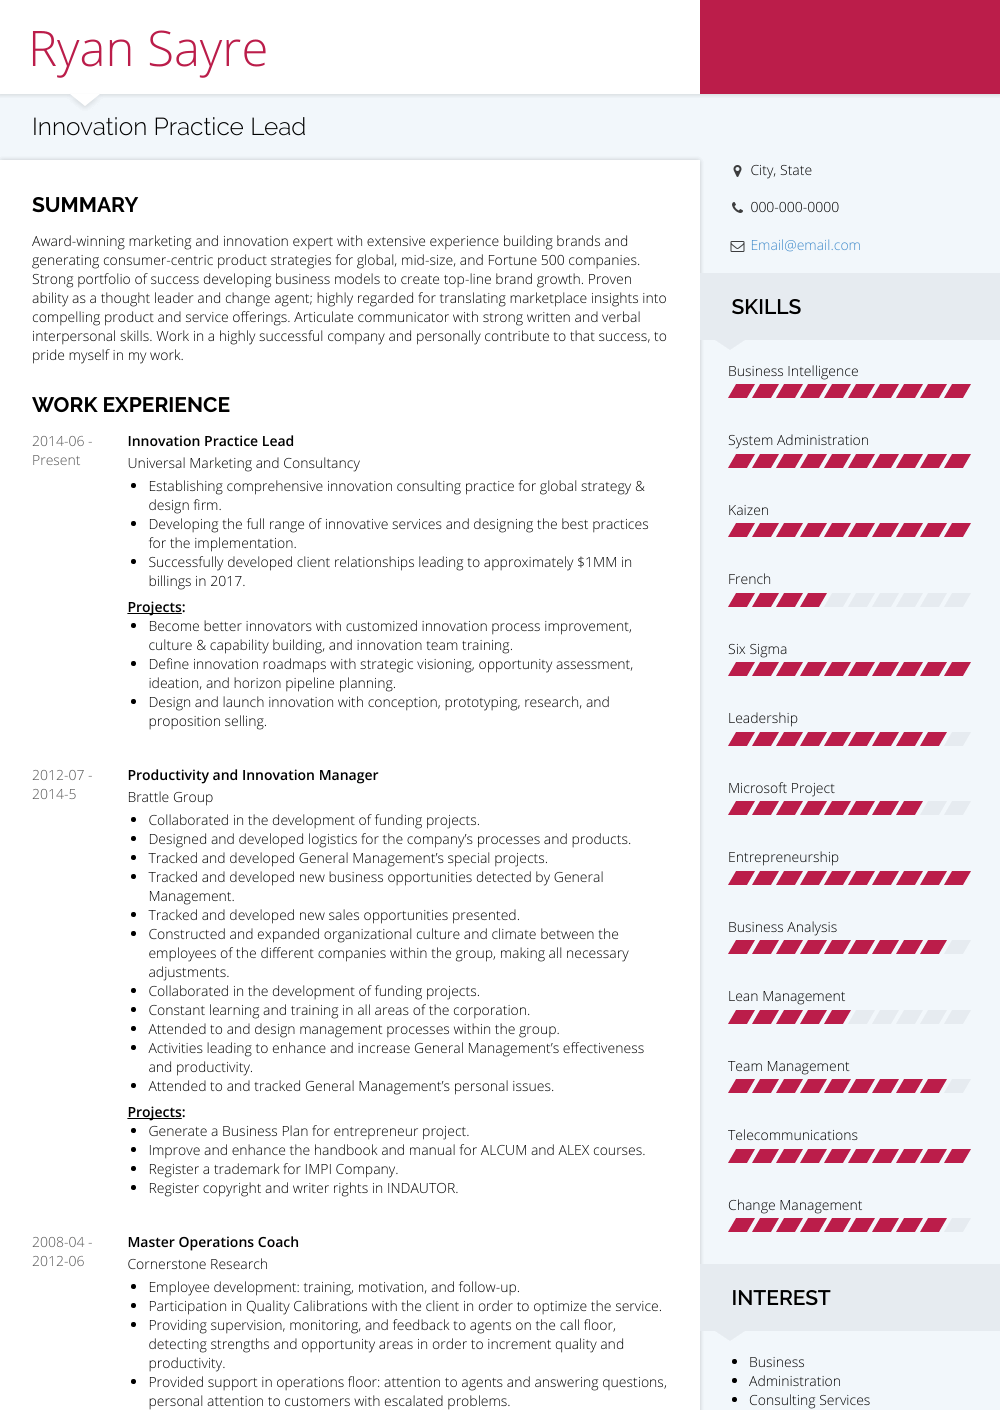 Innovation Practice Lead Resume Sample and Template